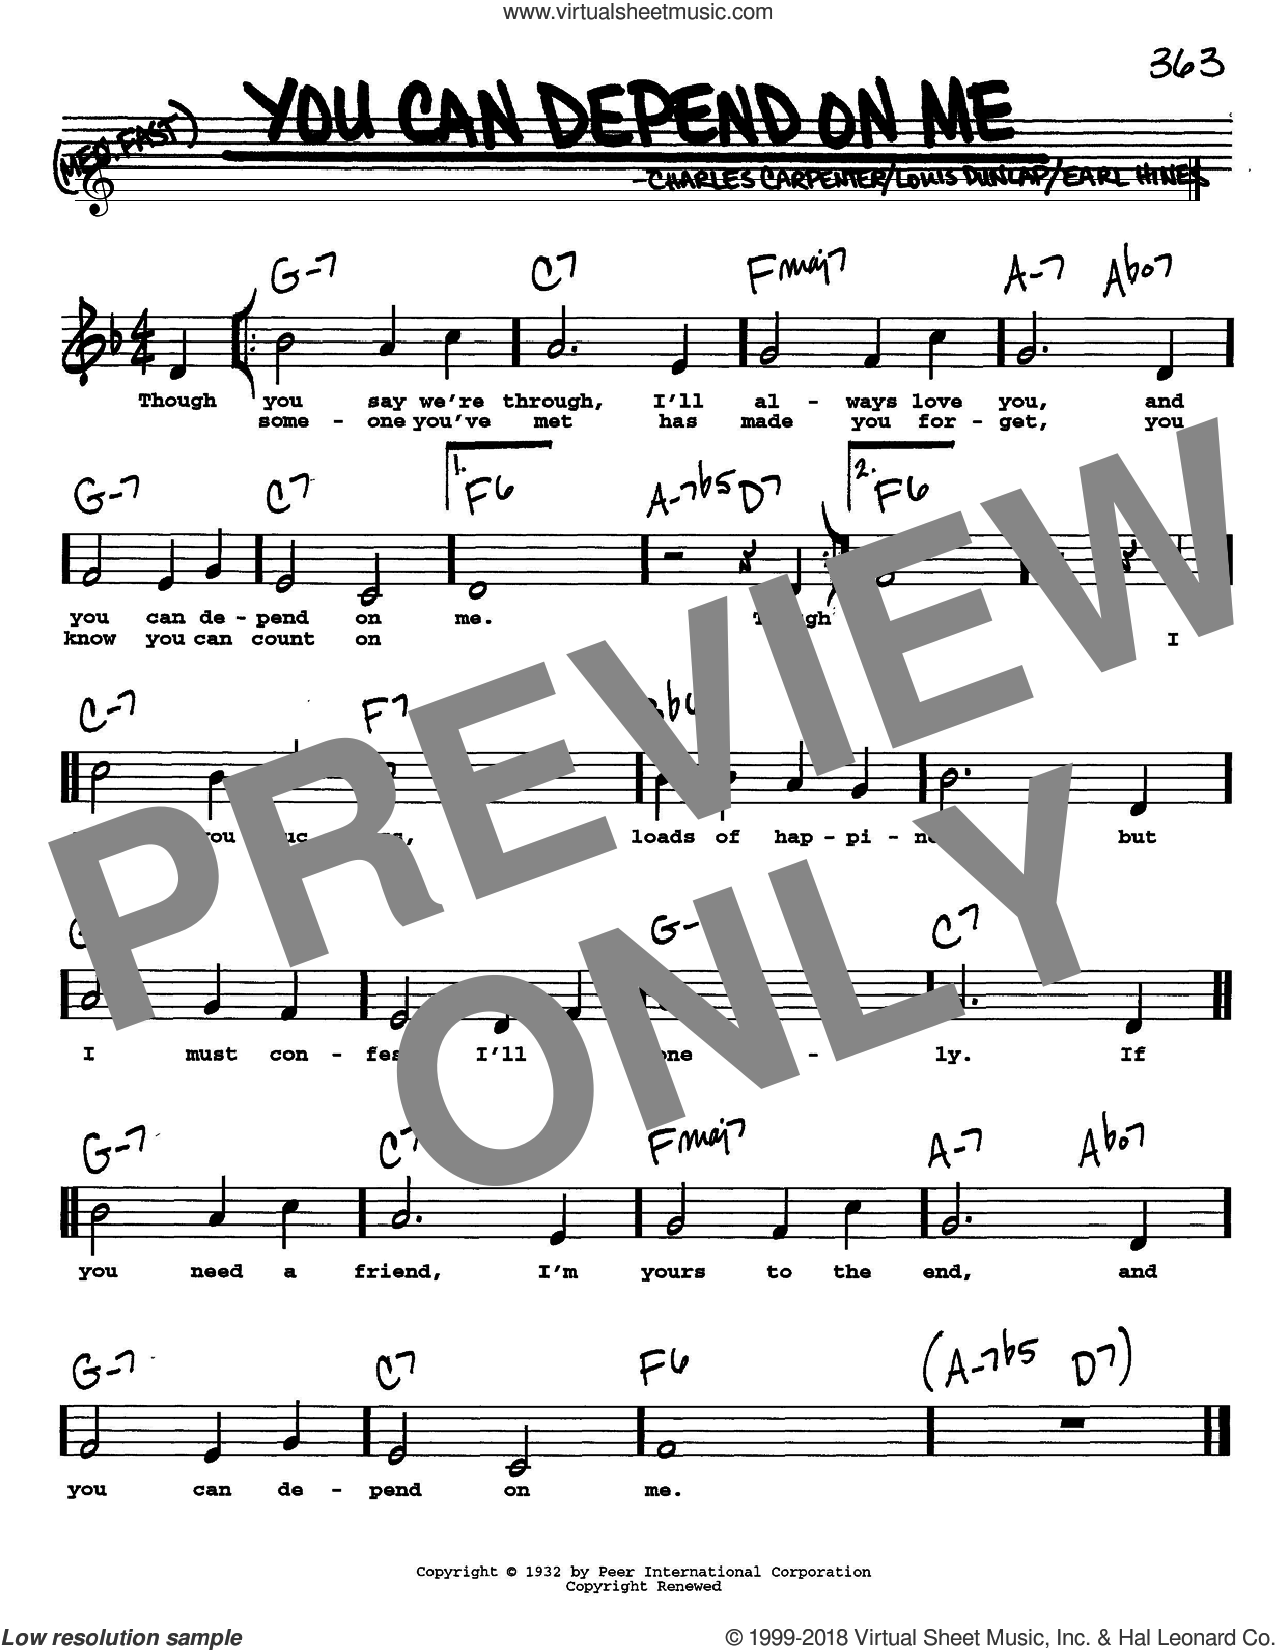 You Can Depend On Me sheet music for voice and other instruments (Vocal Volume 2) by Louis Dunlap and Earl Hines. Score Image Preview.